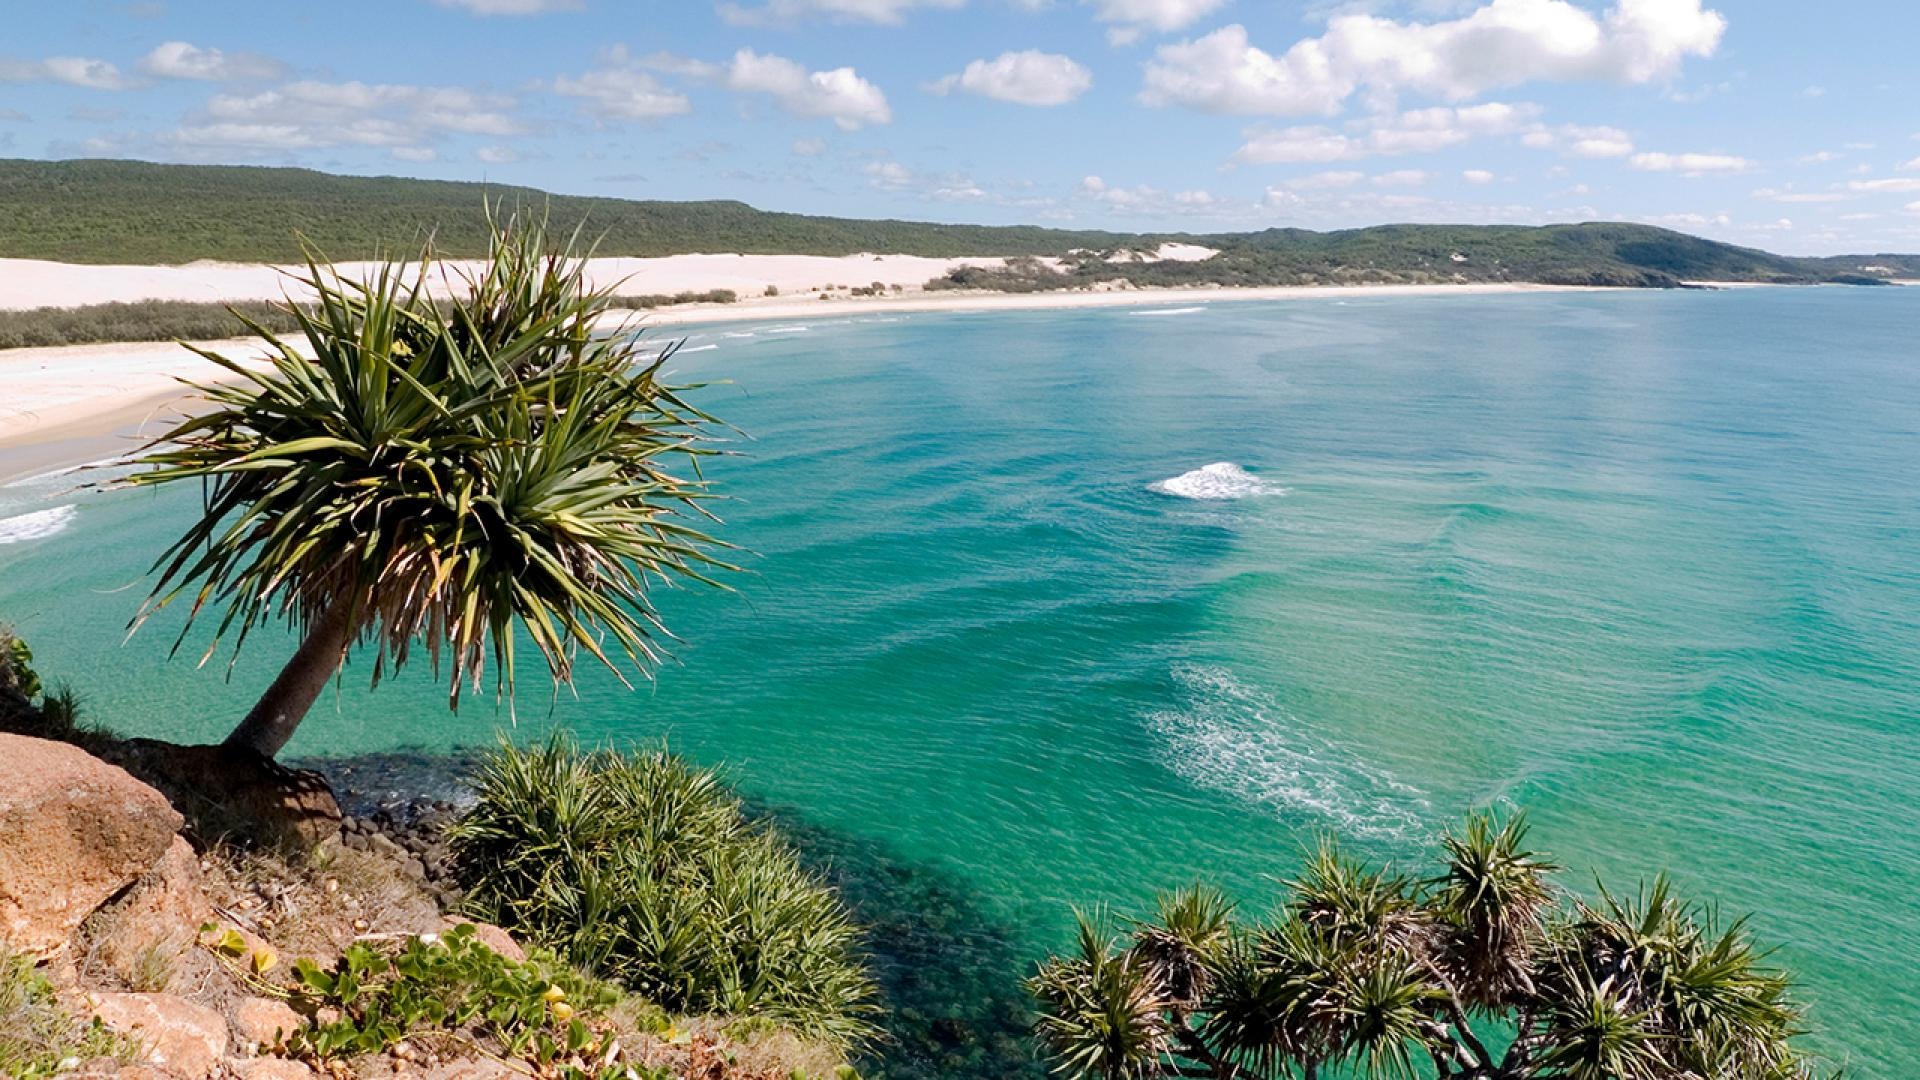 Australia's Fraser Island, a UNESCO World Heritage Site as well as a popular tourist destination, has been ravaged by bushfires for the last several weeks.